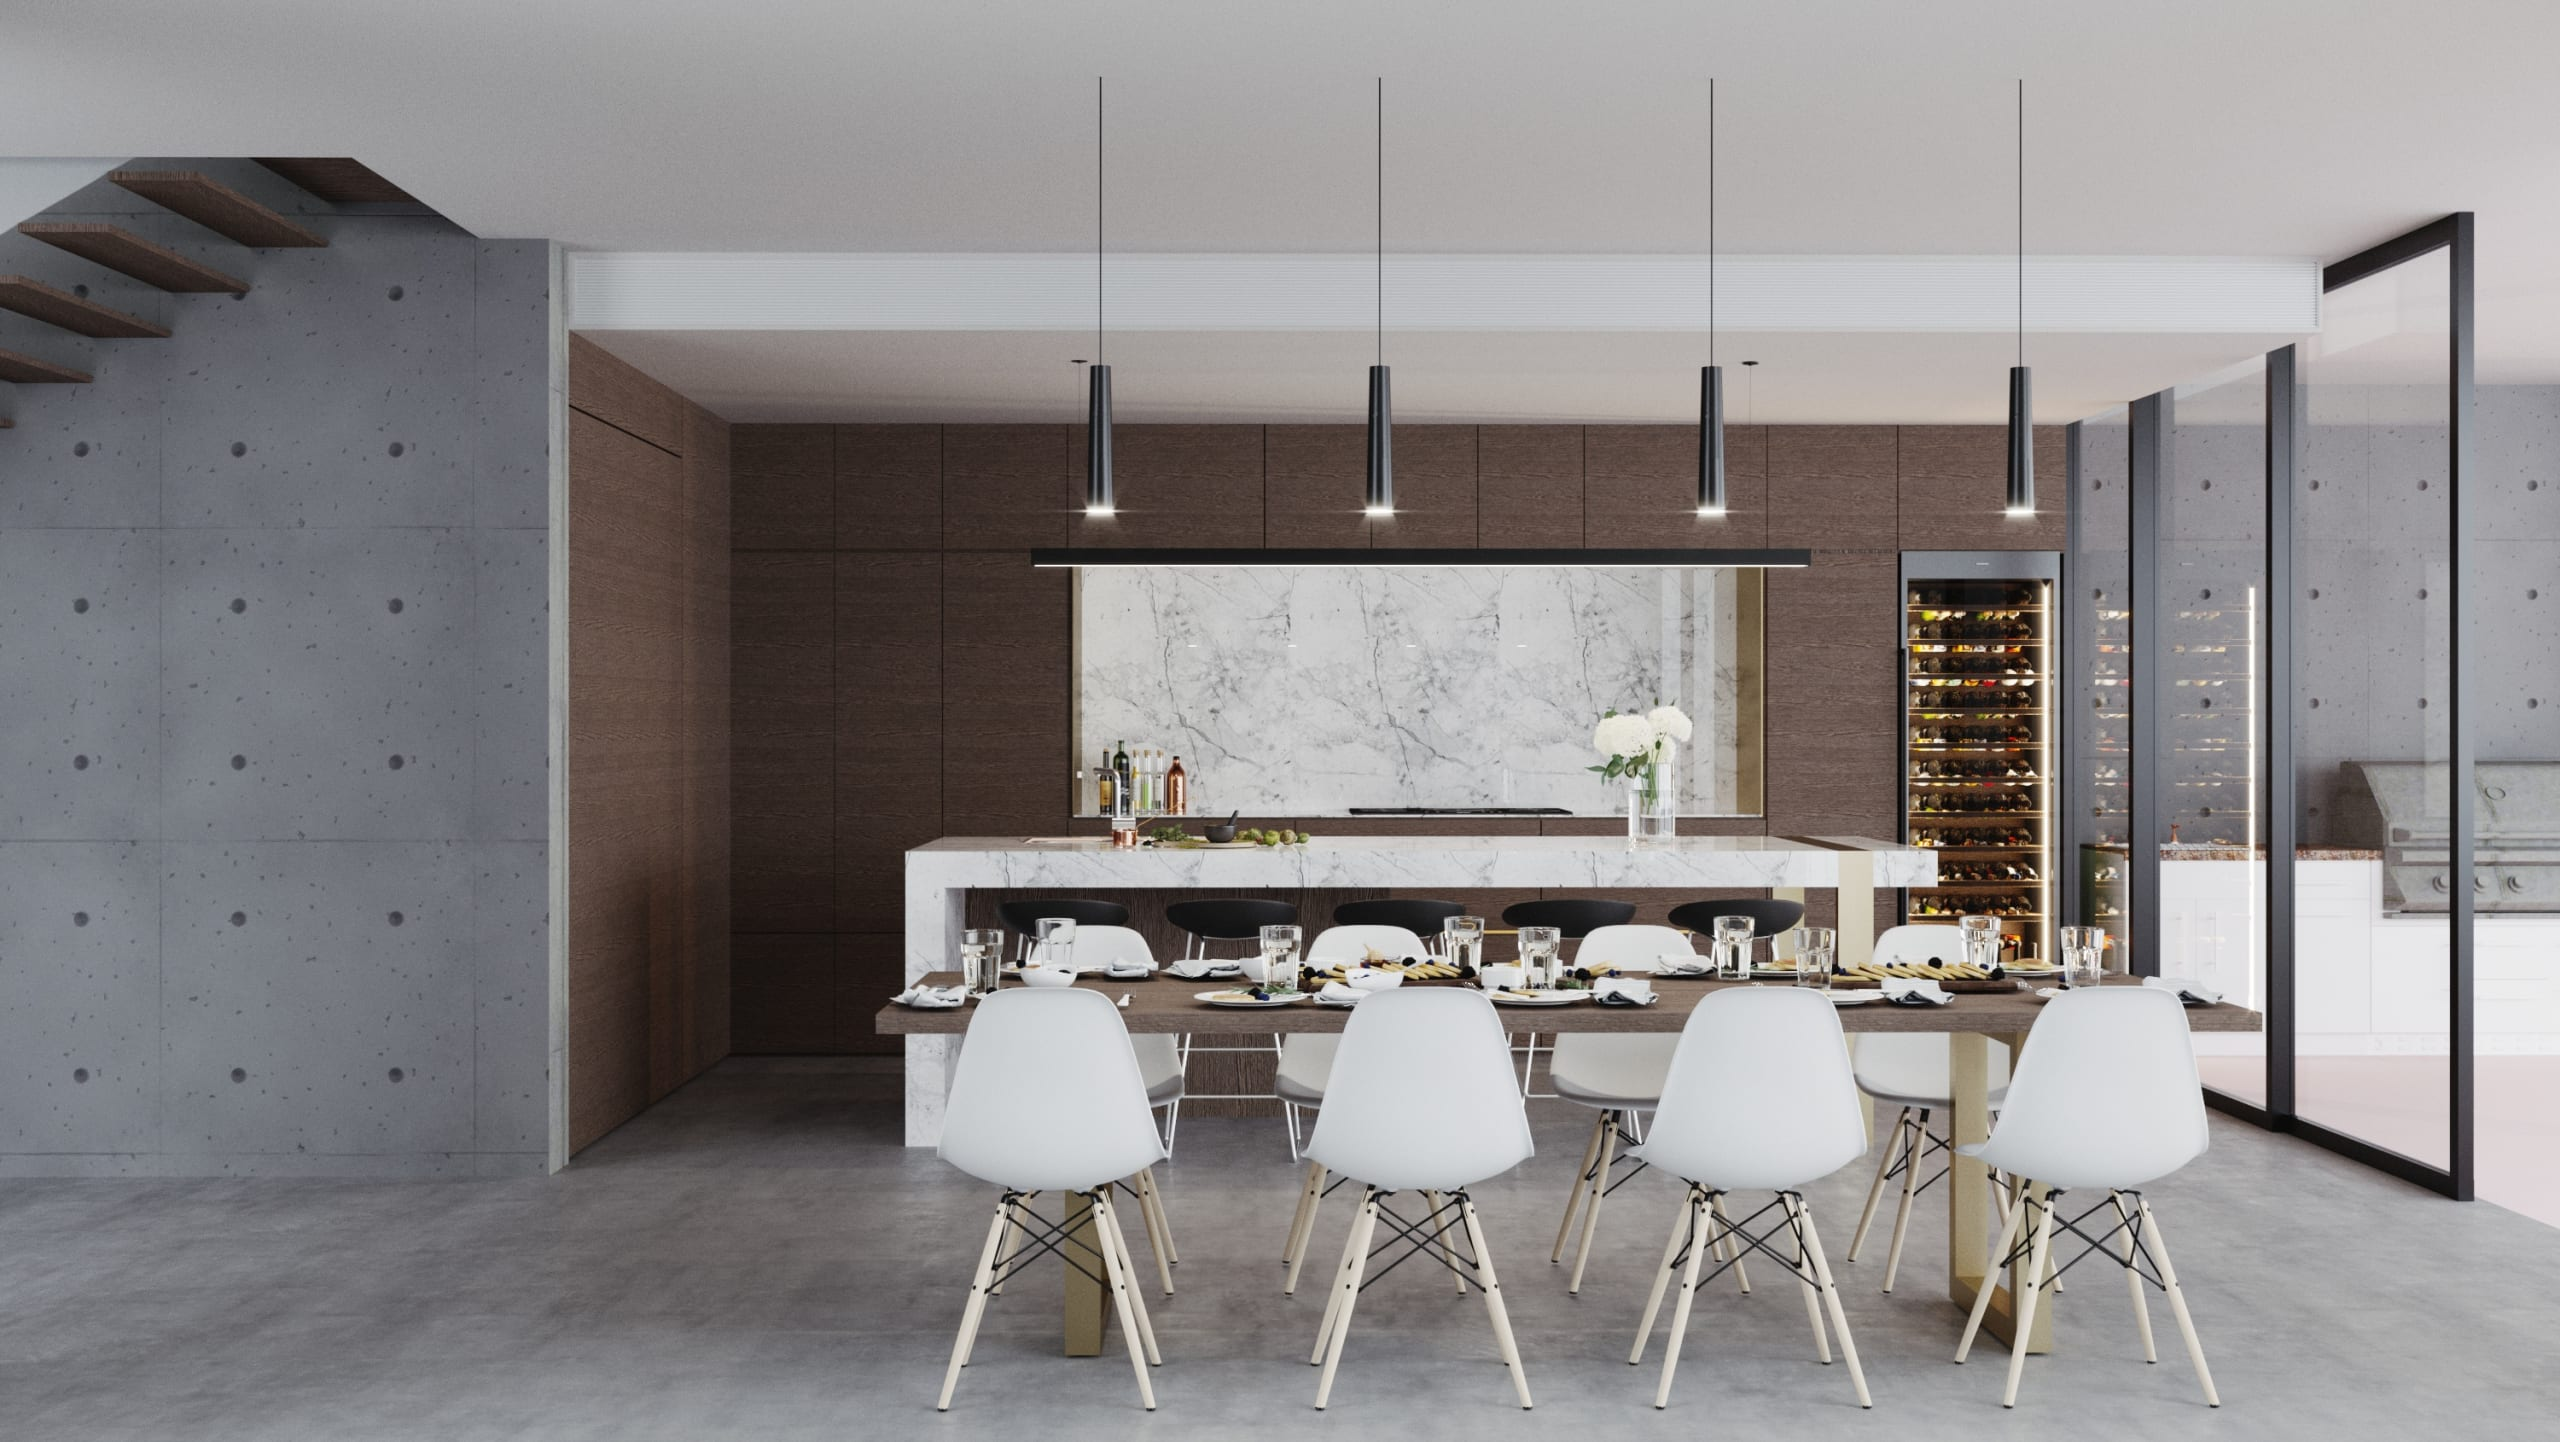 The Sanctuary Photorealistic Visualisation - Dining & Kitchen Render